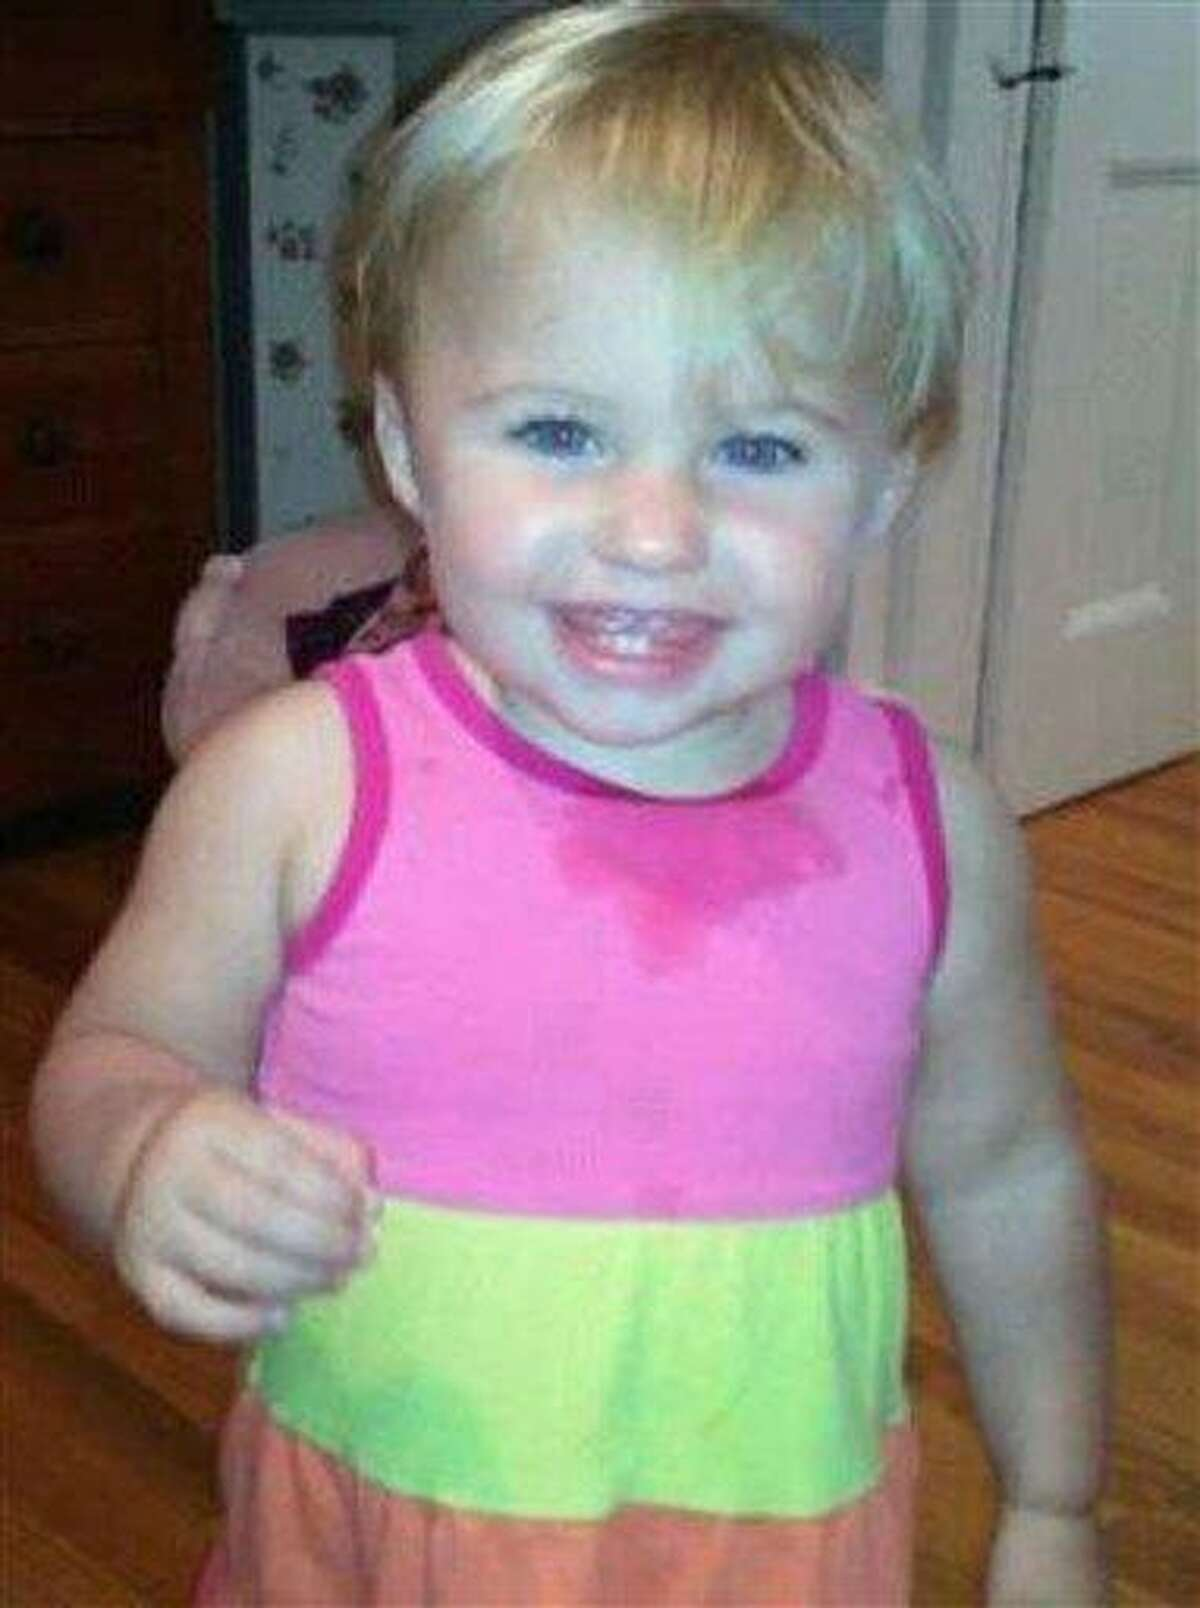 """This undated photo obtained from a Facebook page shows missing toddler Alya Reynolds. Police investigating the dissapearance of the 20-month-old girl from her father's home two weeks ago said Friday, Dec. 30, 2011 they believe foul play was involved. Waterville police announced the case """"has evolved from the search for a missing child to a criminal investigation."""" (AP Photo/Obtained From Facebook)"""